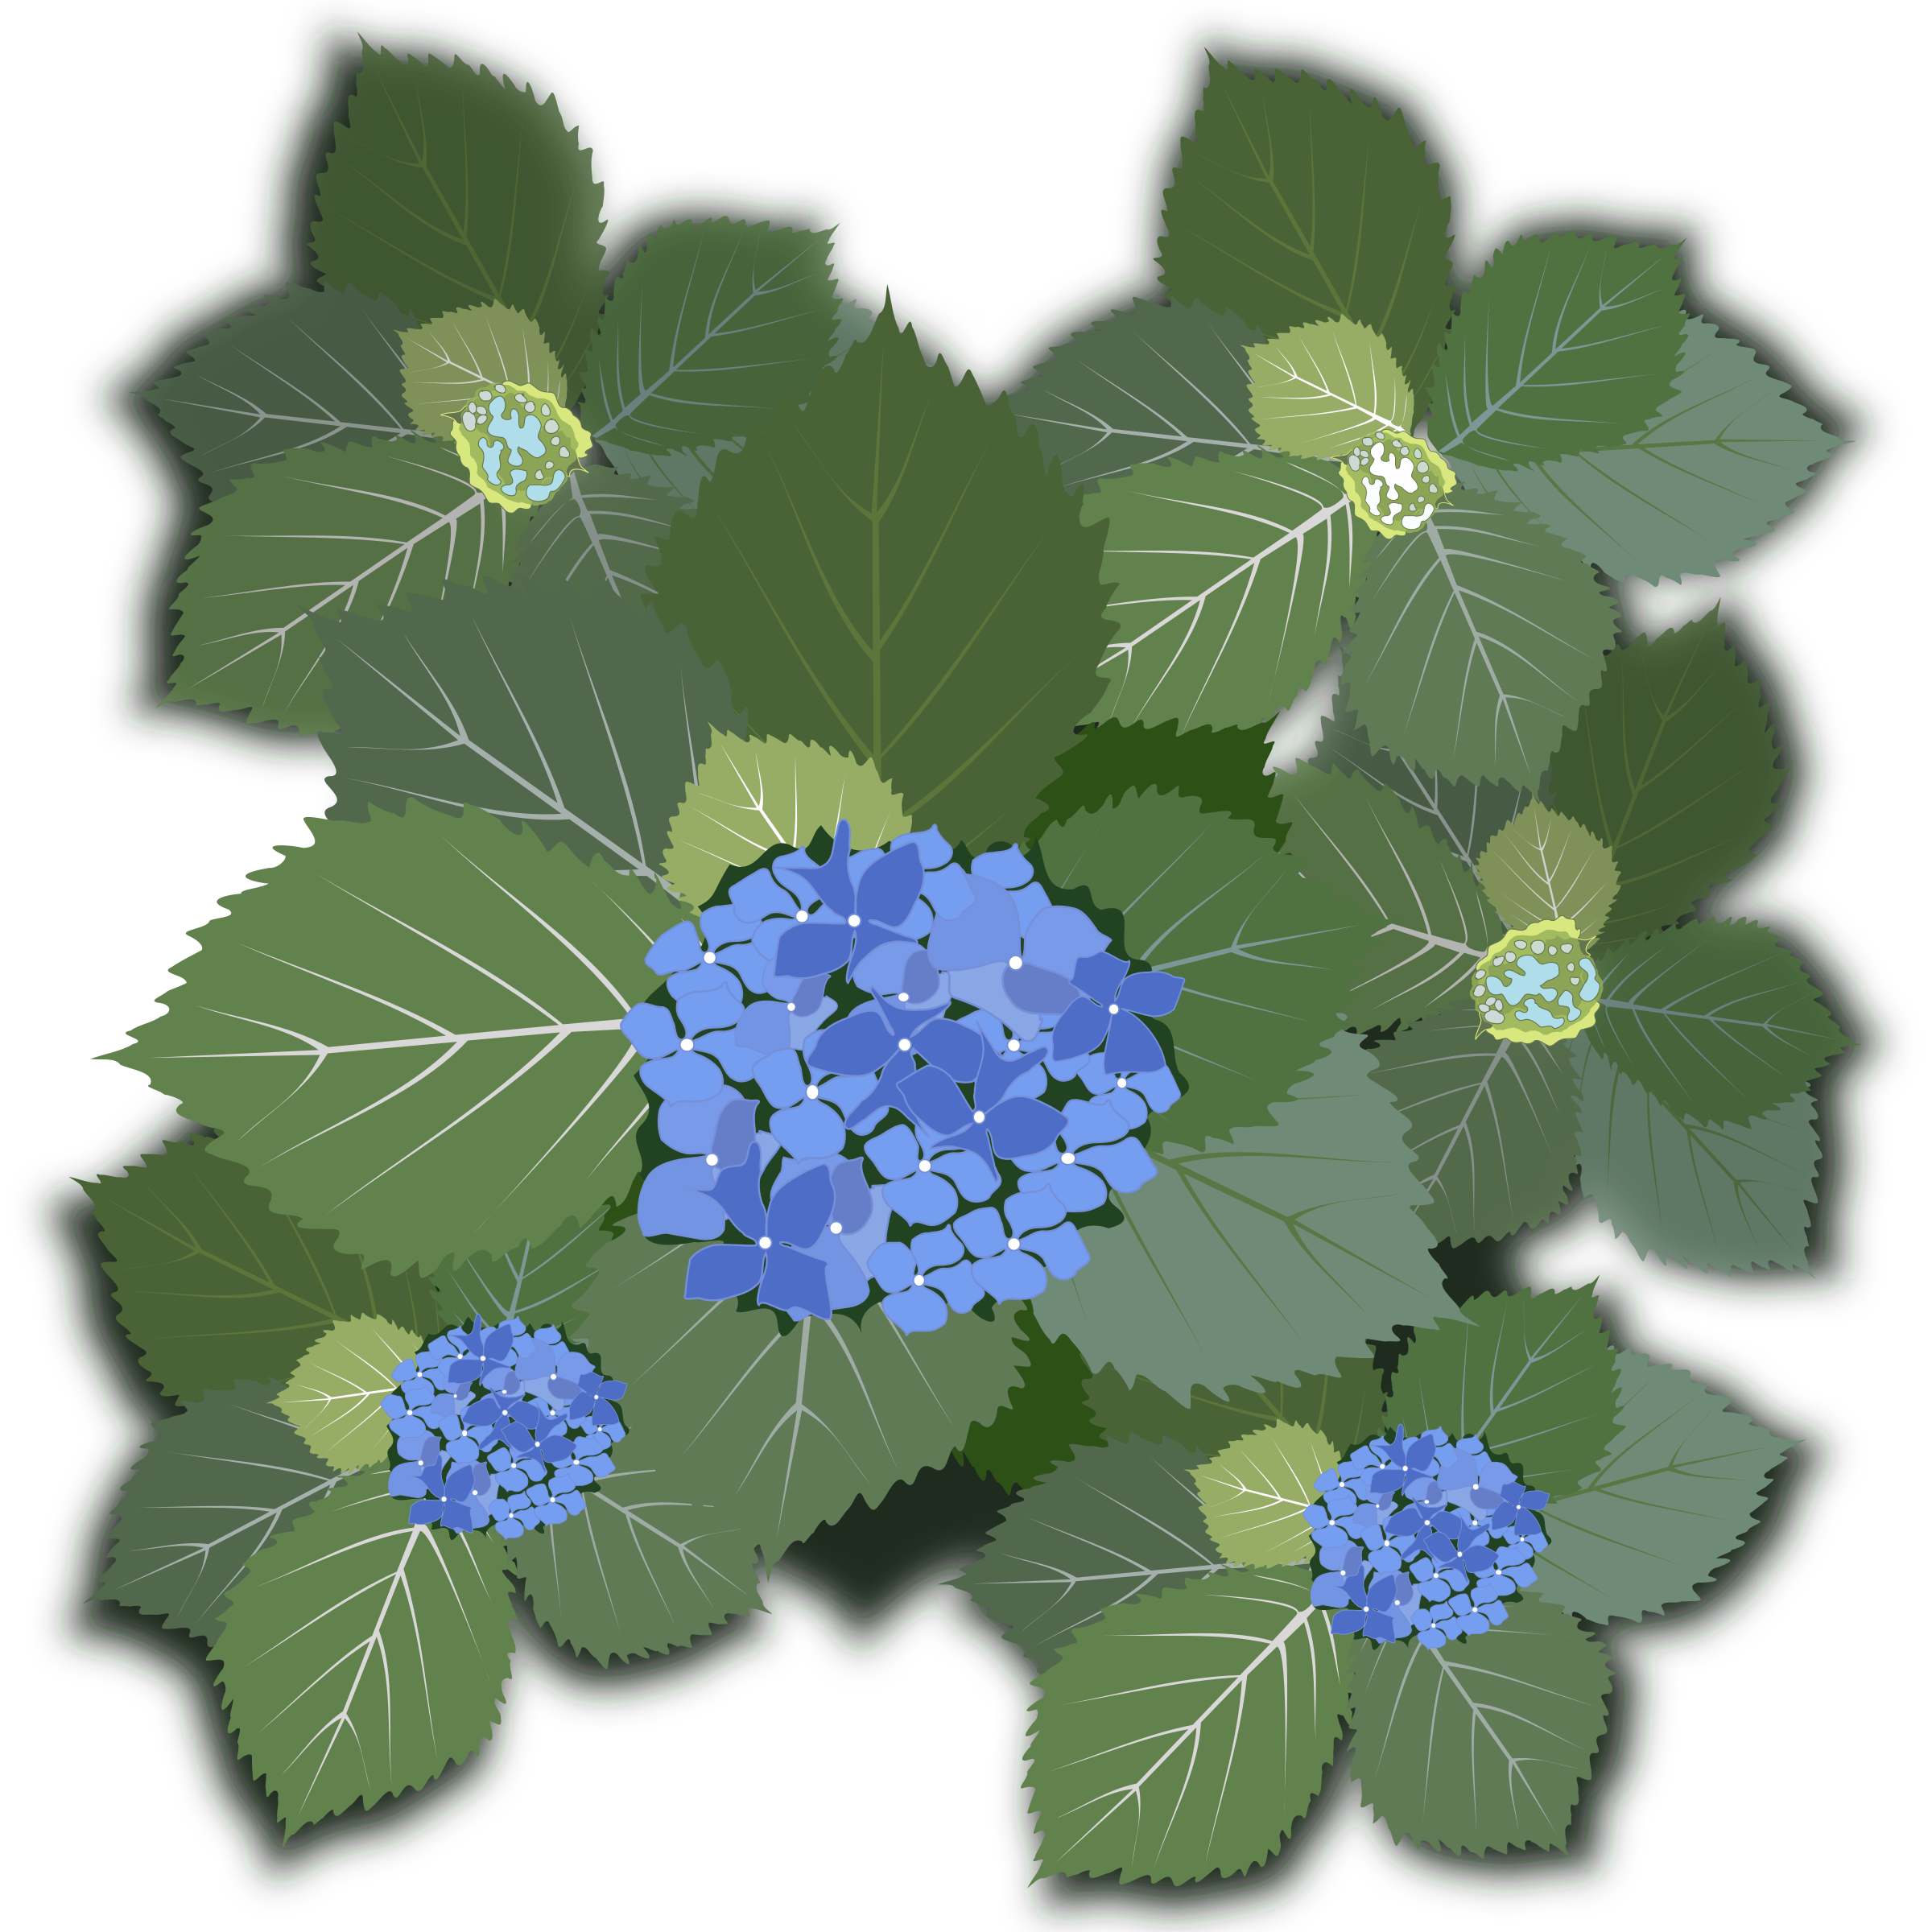 graphic free stock Hydrangea clipart. Macrophylla big image png.